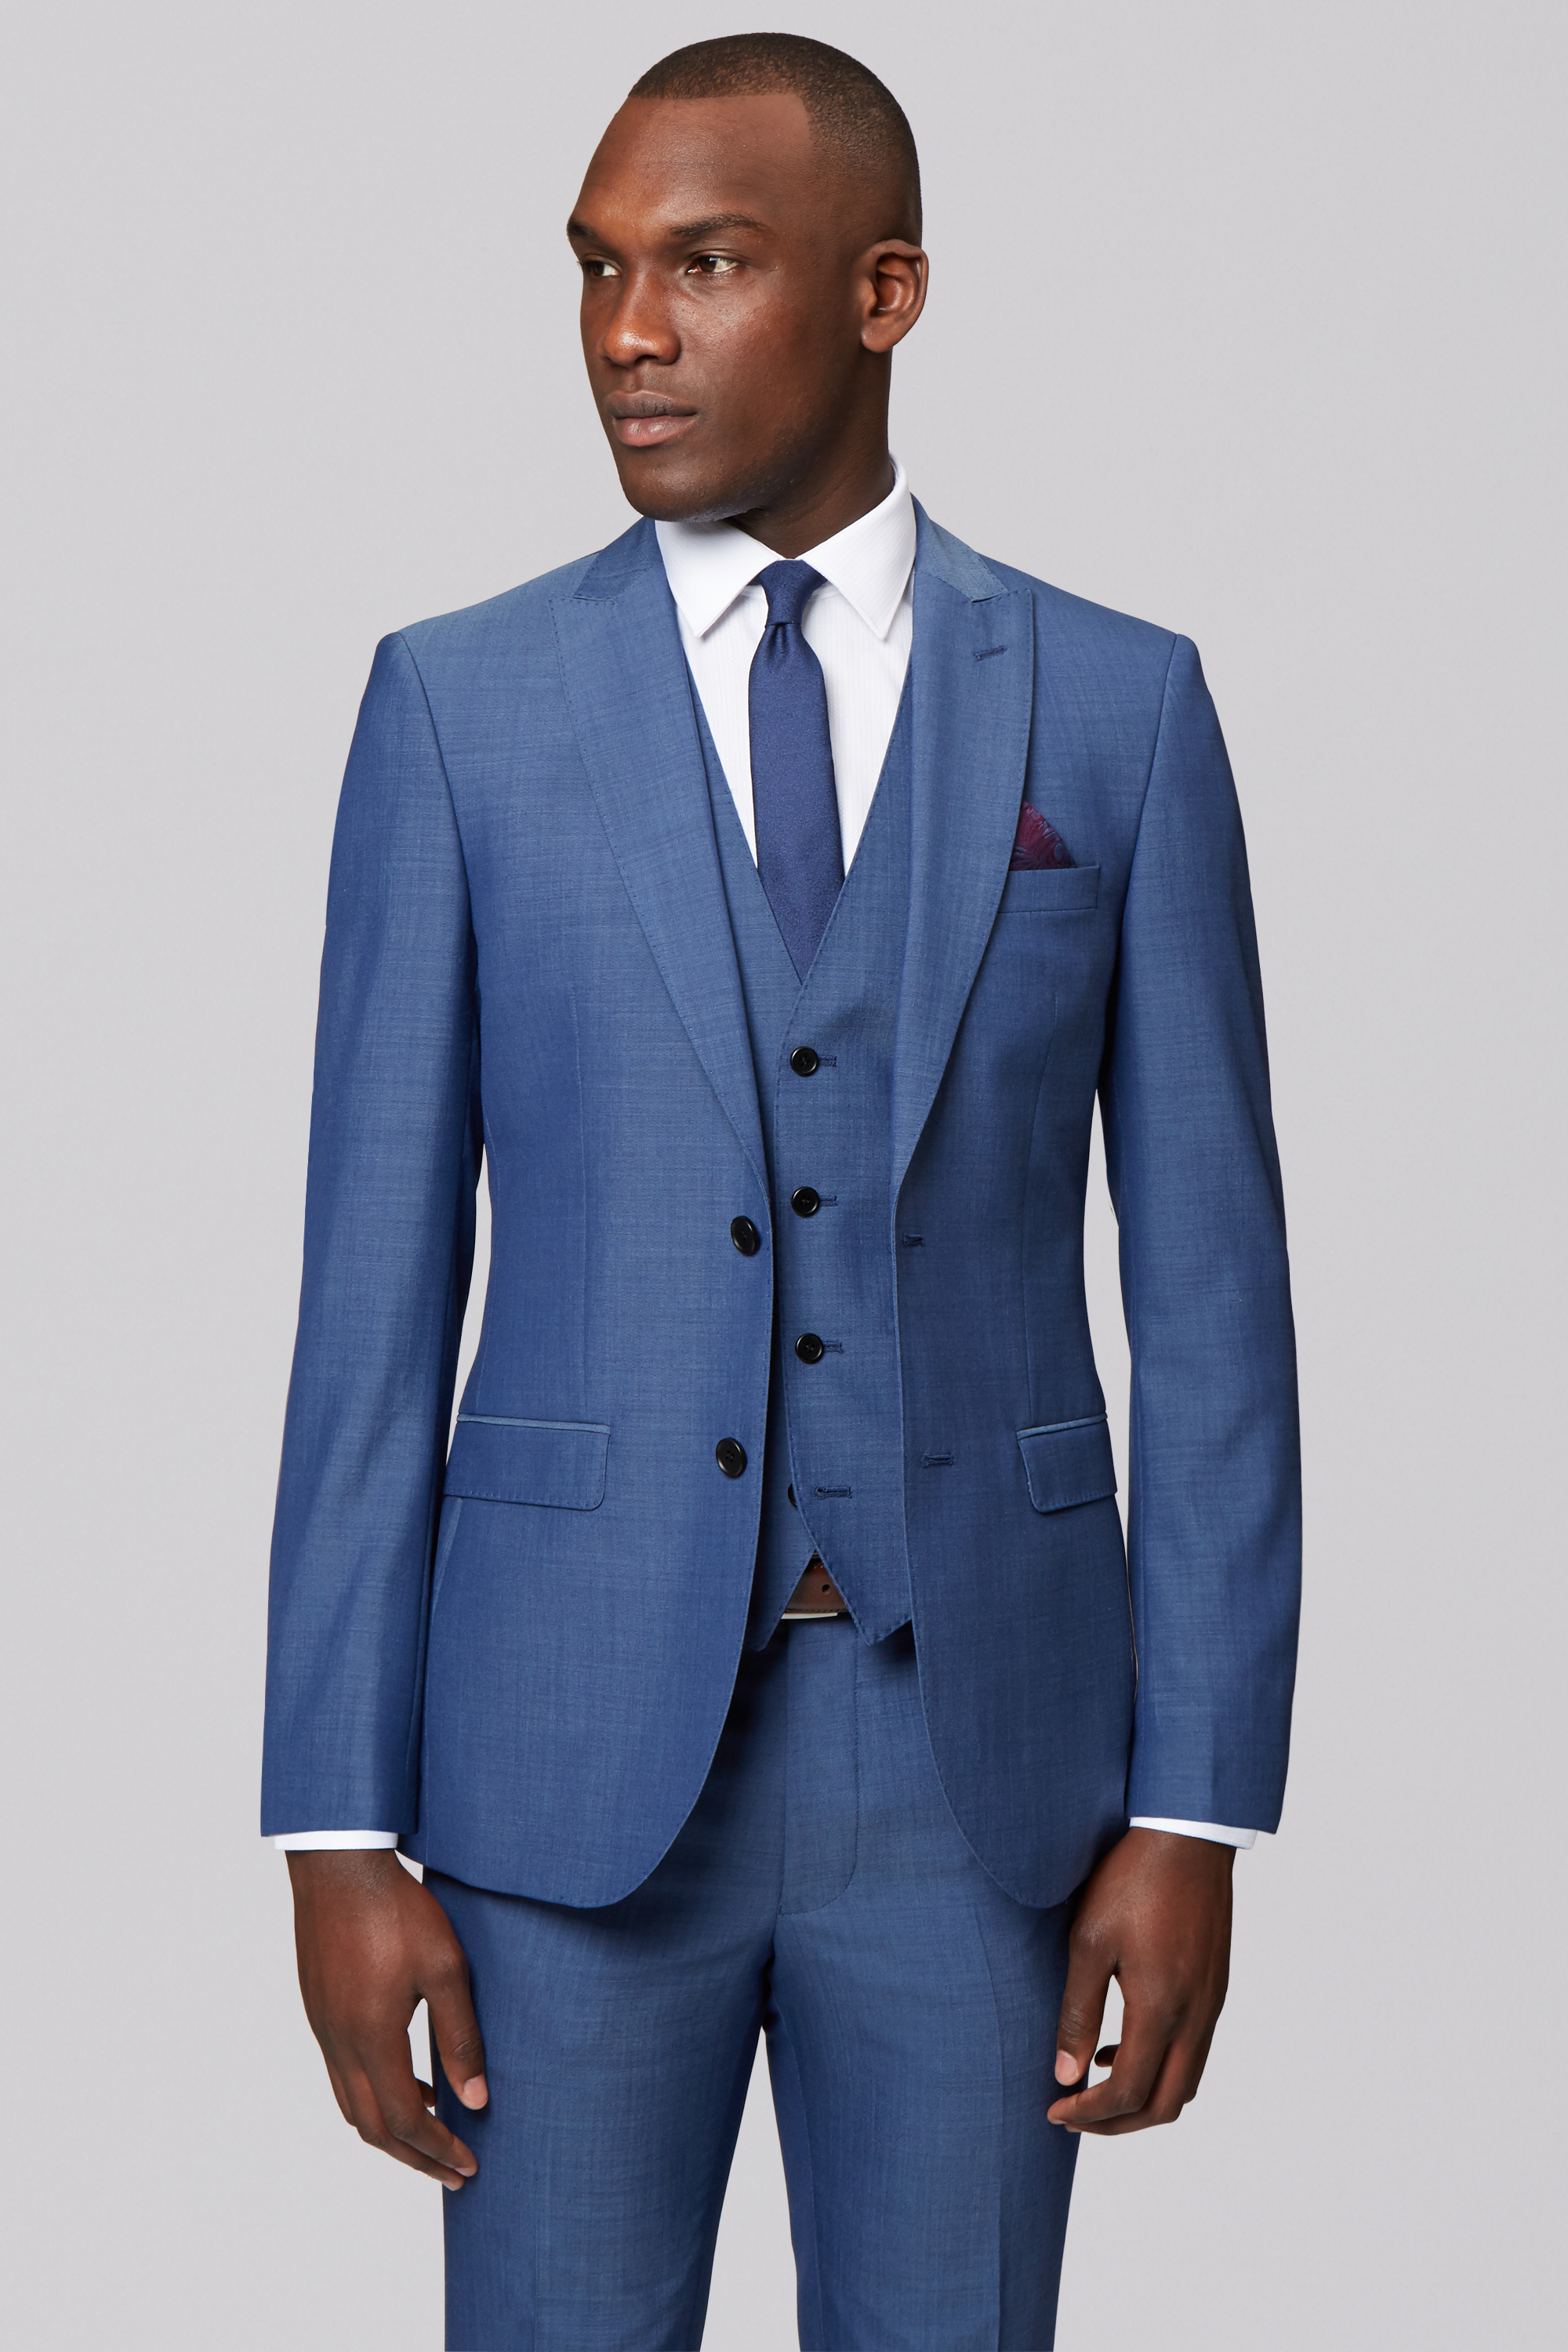 French Connection Mens Blue Suit Jacket Slim Fit Two Button Formal ...